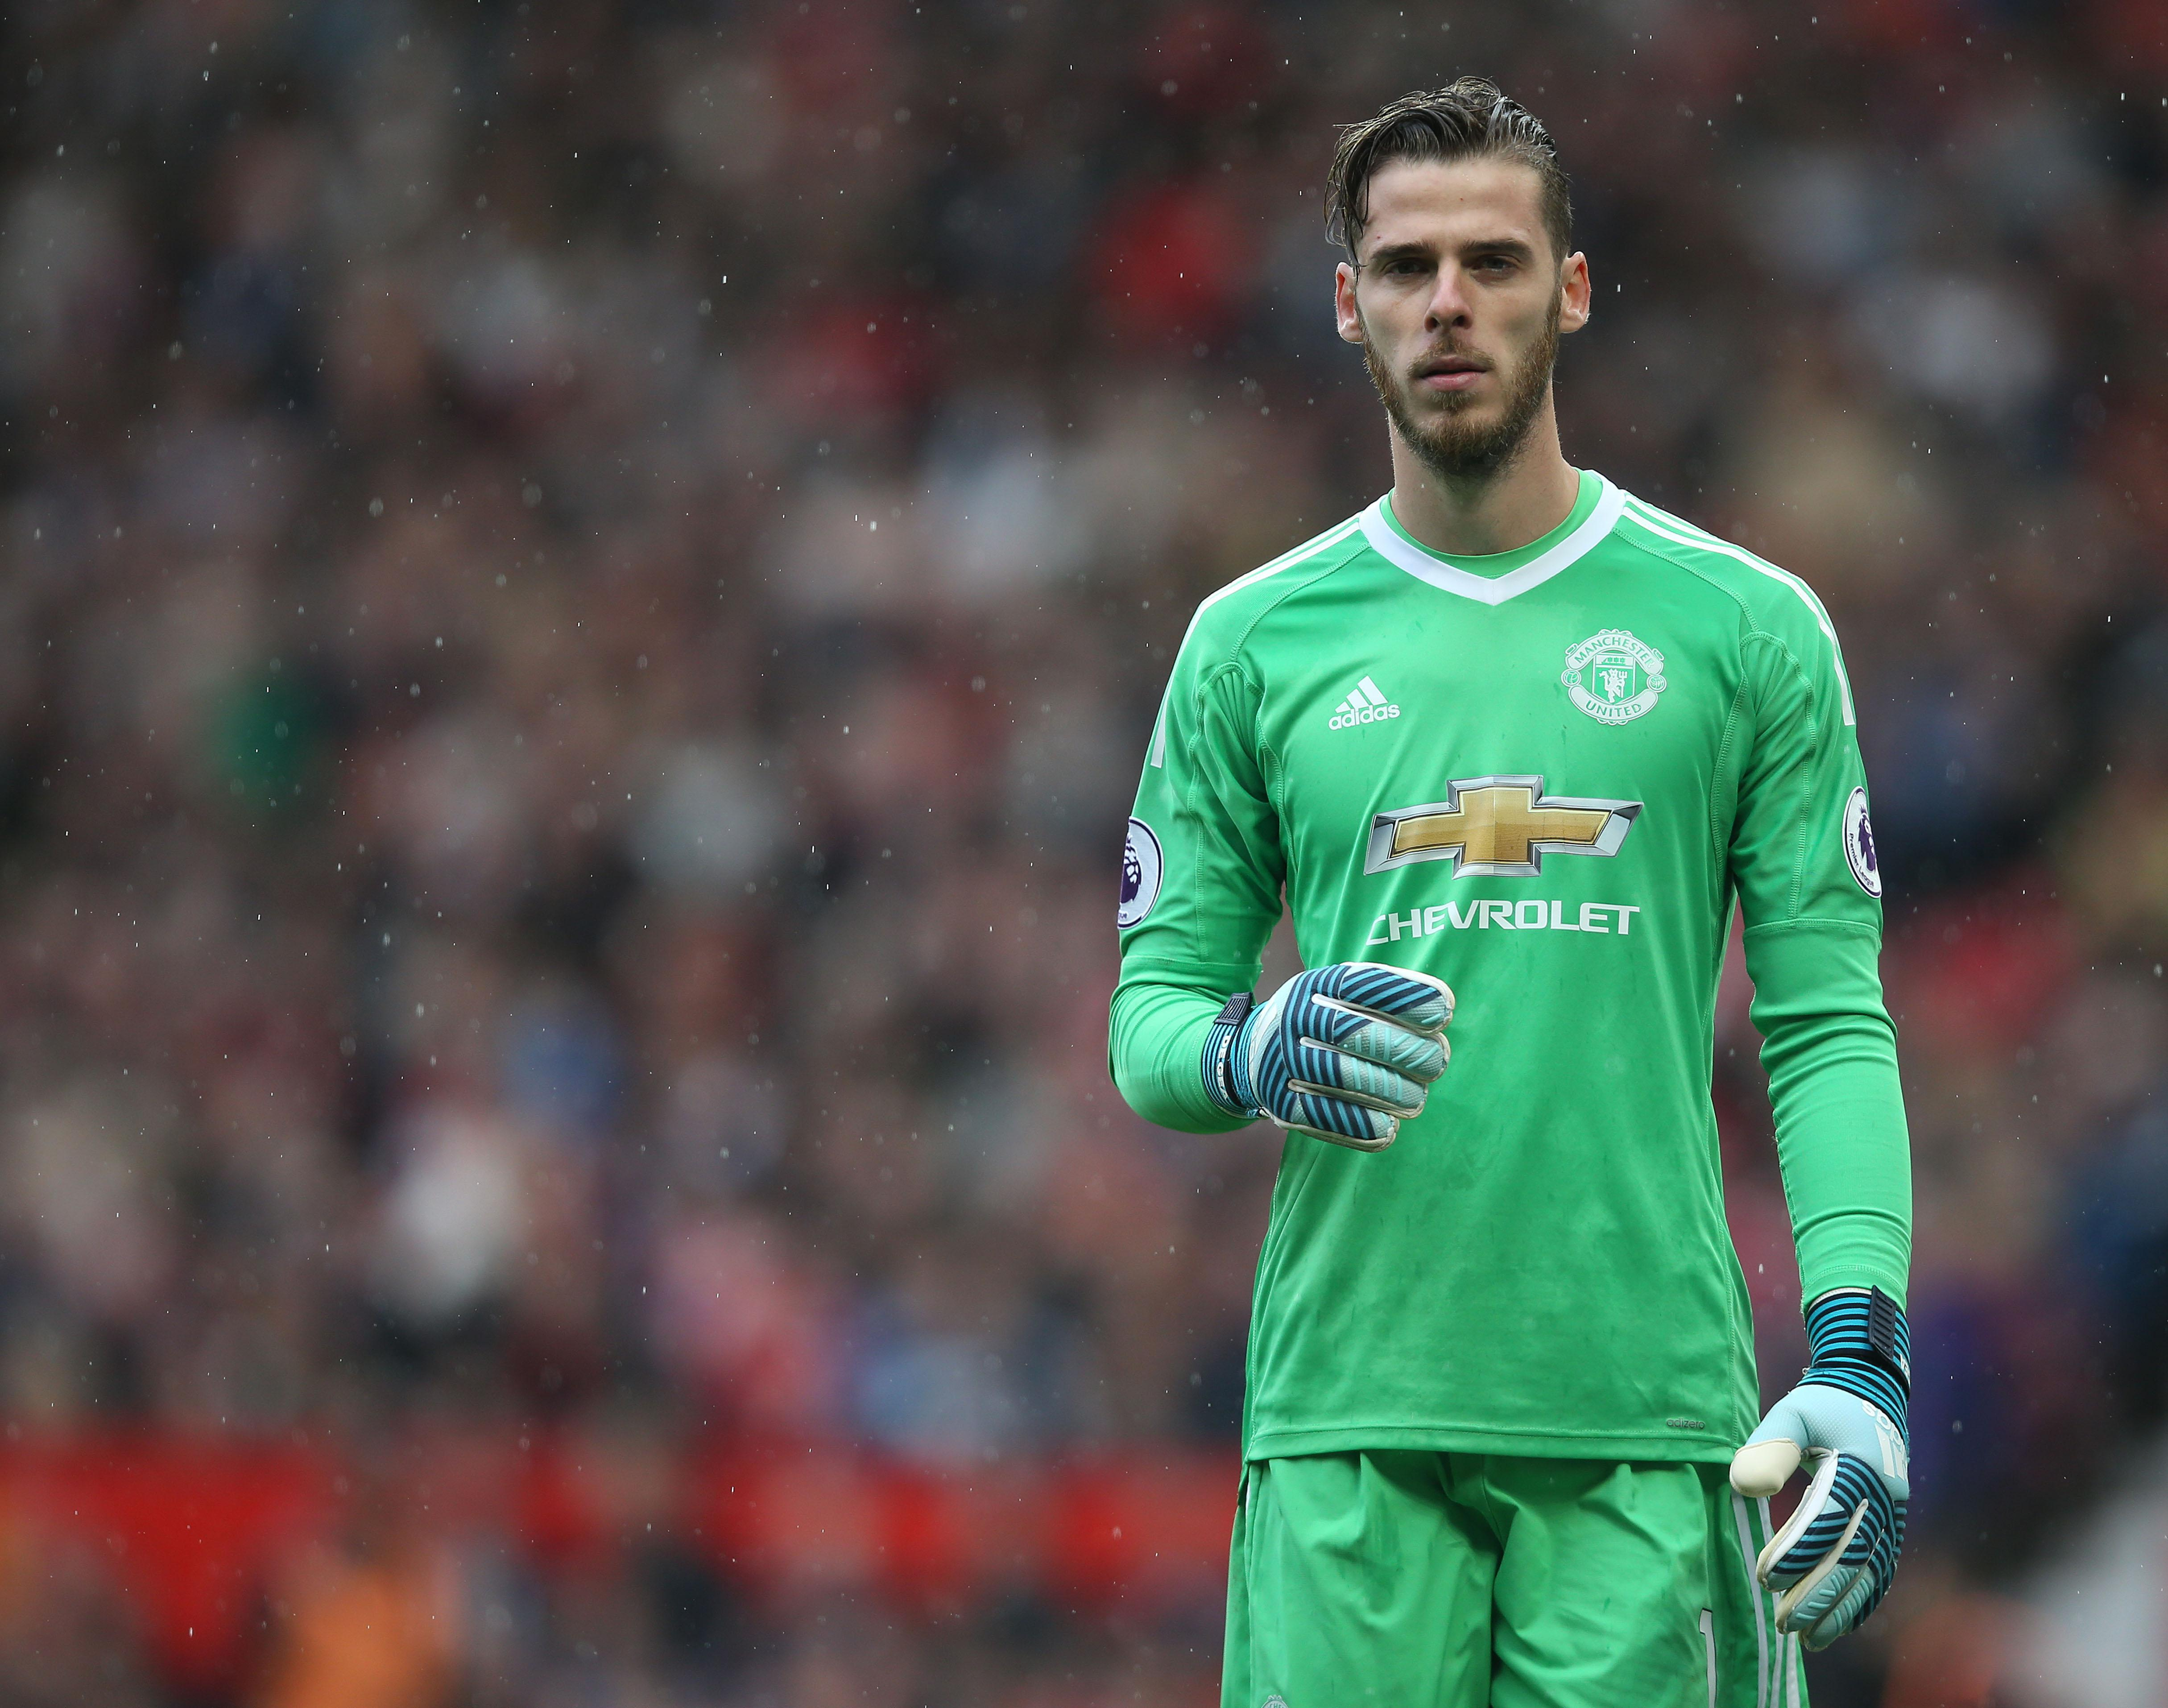 Henderson knows his path to the first team at Old Trafford is blocked by David De Gea